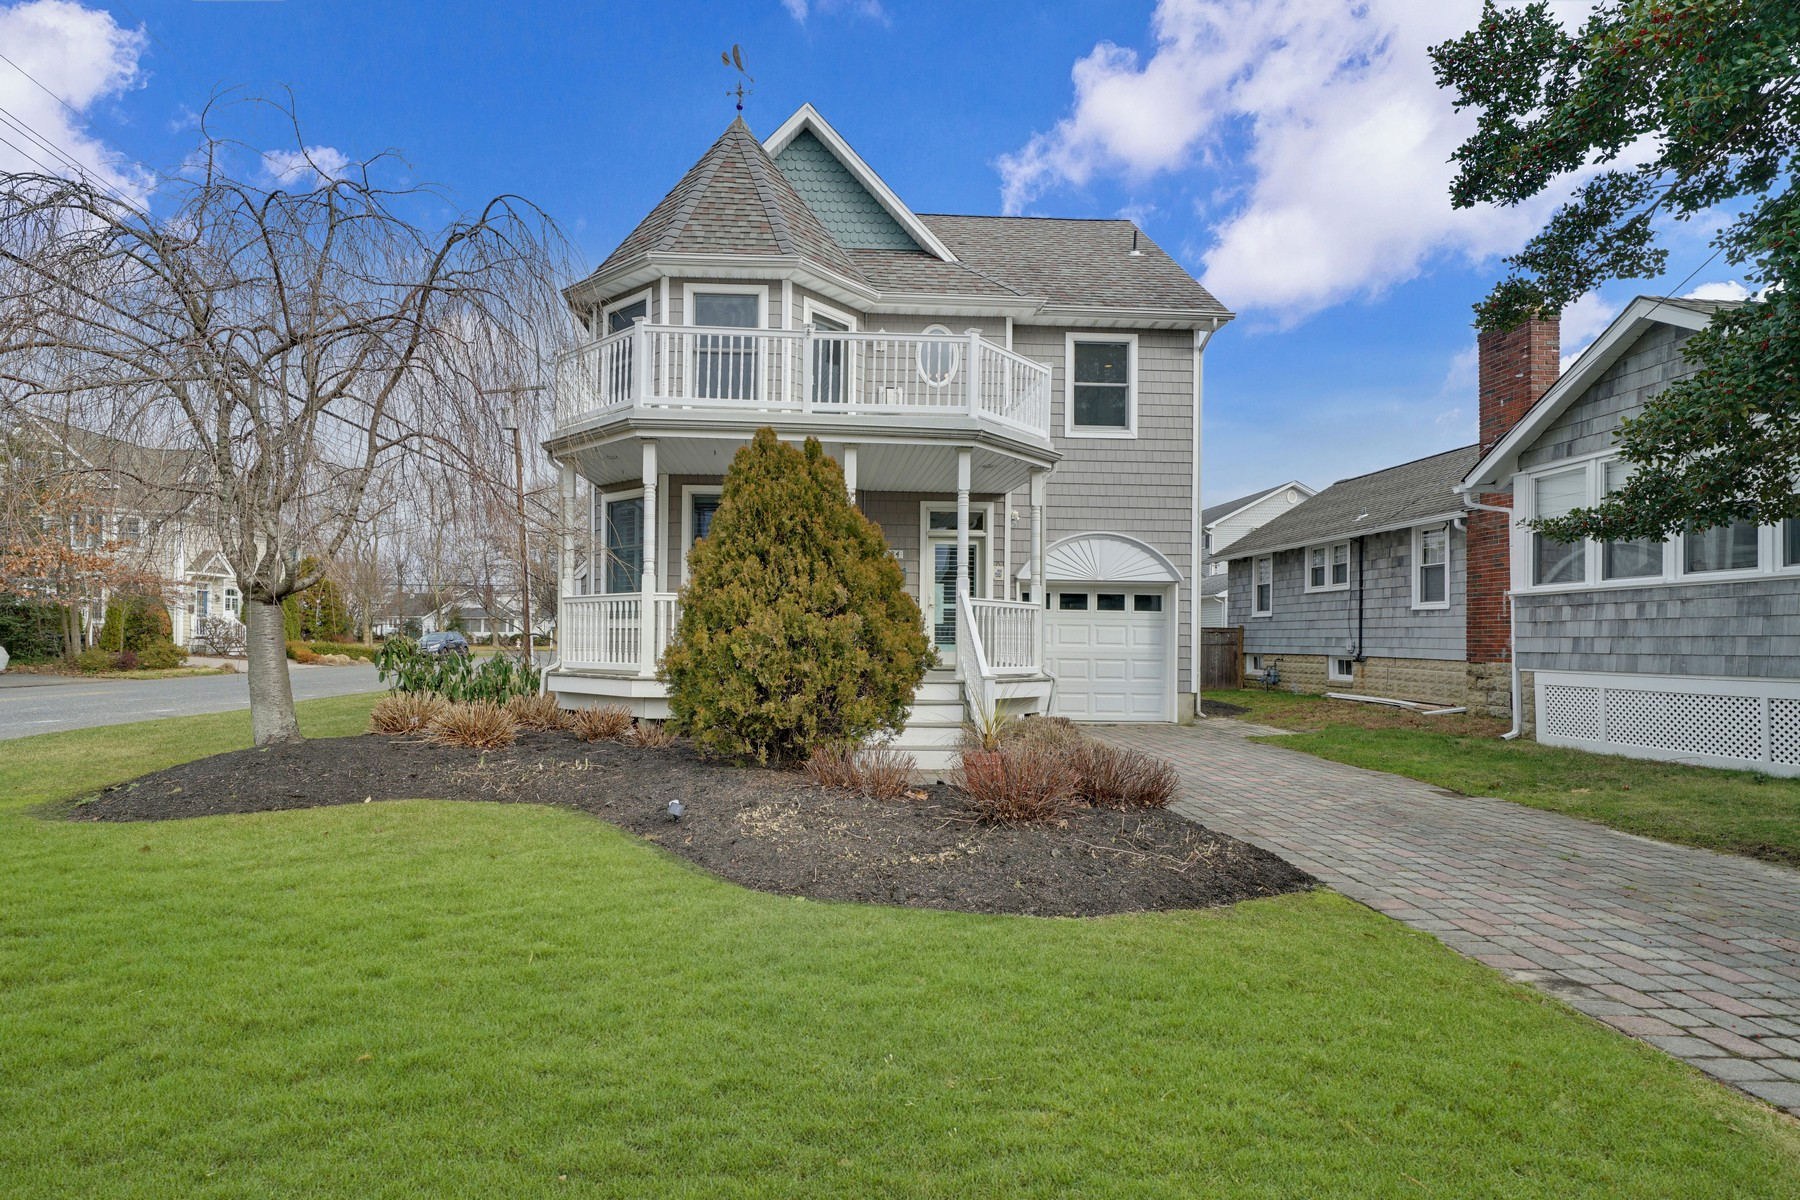 Single Family Home for Sale at Your Beach House Awaits 384 Pine Avenue, Manasquan, New Jersey 08736 United States